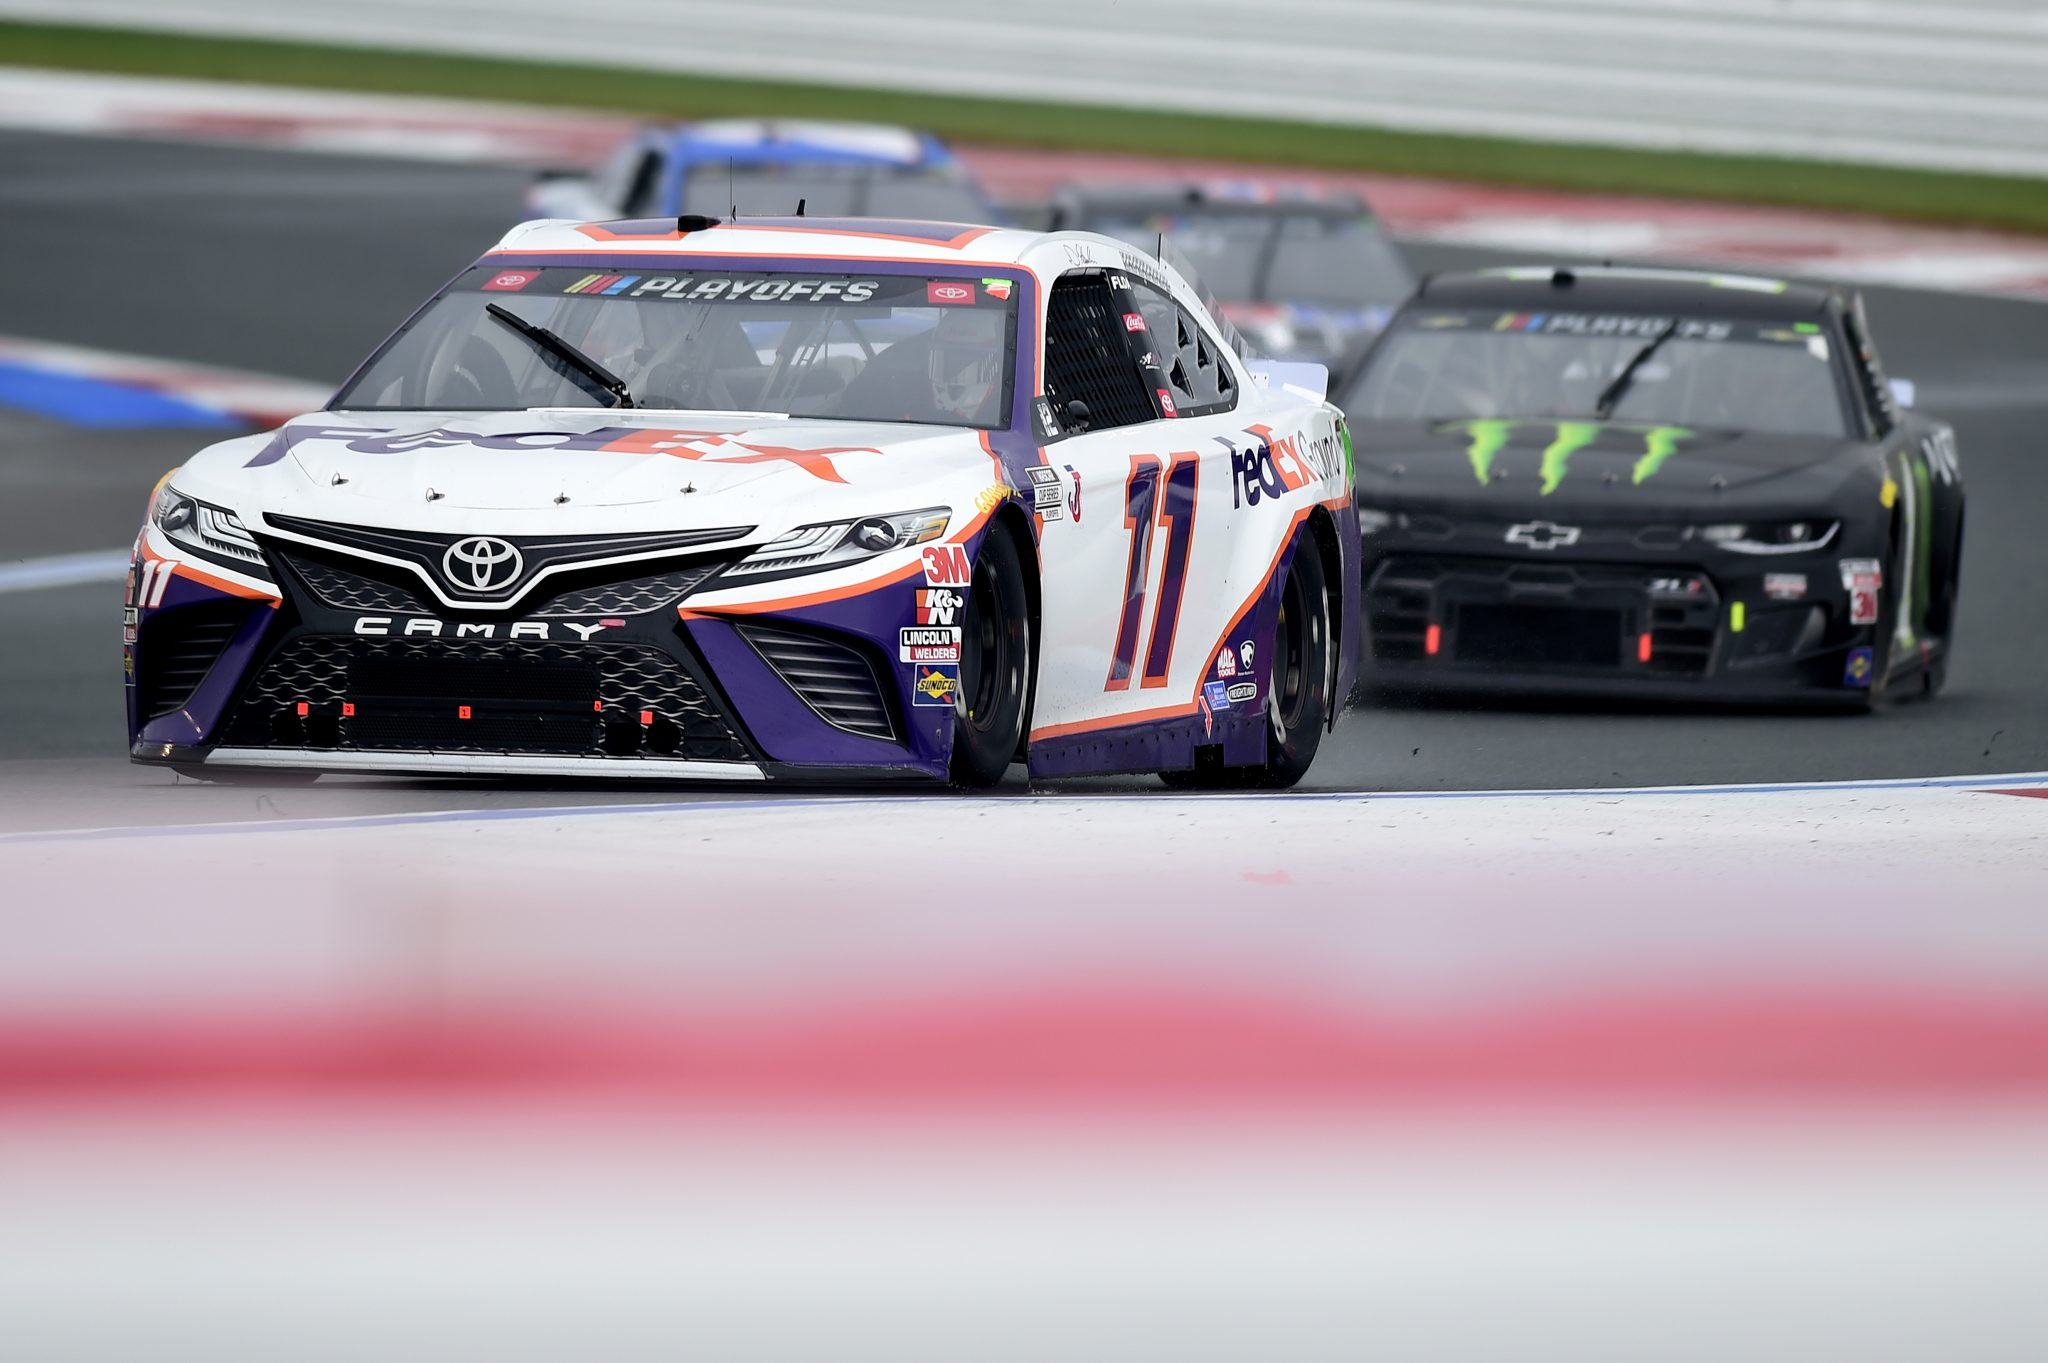 CONCORD, NORTH CAROLINA - OCTOBER 11: Denny Hamlin, driver of the #11 FedEx Ground Toyota, leads the field during the NASCAR Cup Series Bank of America ROVAL 400 at Charlotte Motor Speedway on October 11, 2020 in Concord, North Carolina. (Photo by Jared C. Tilton/Getty Images) | Getty Images